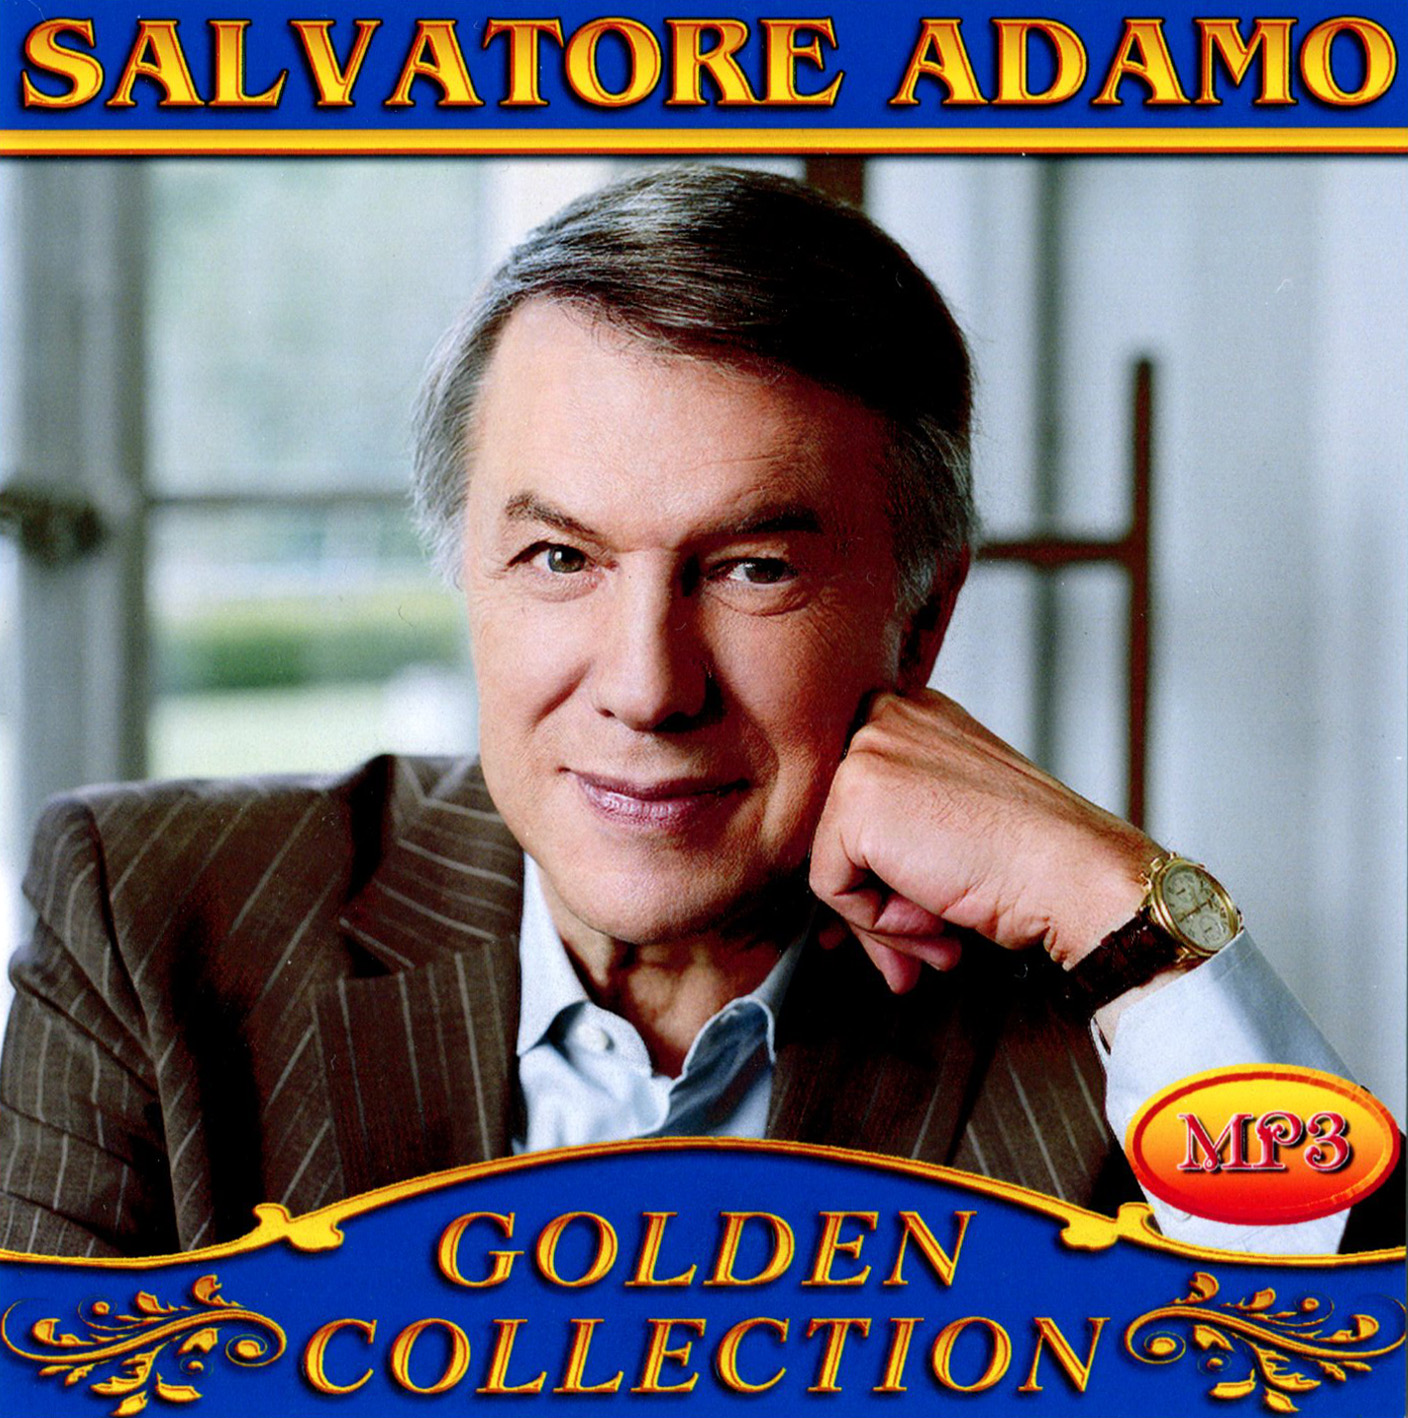 Salvatore Adamo [mp3]